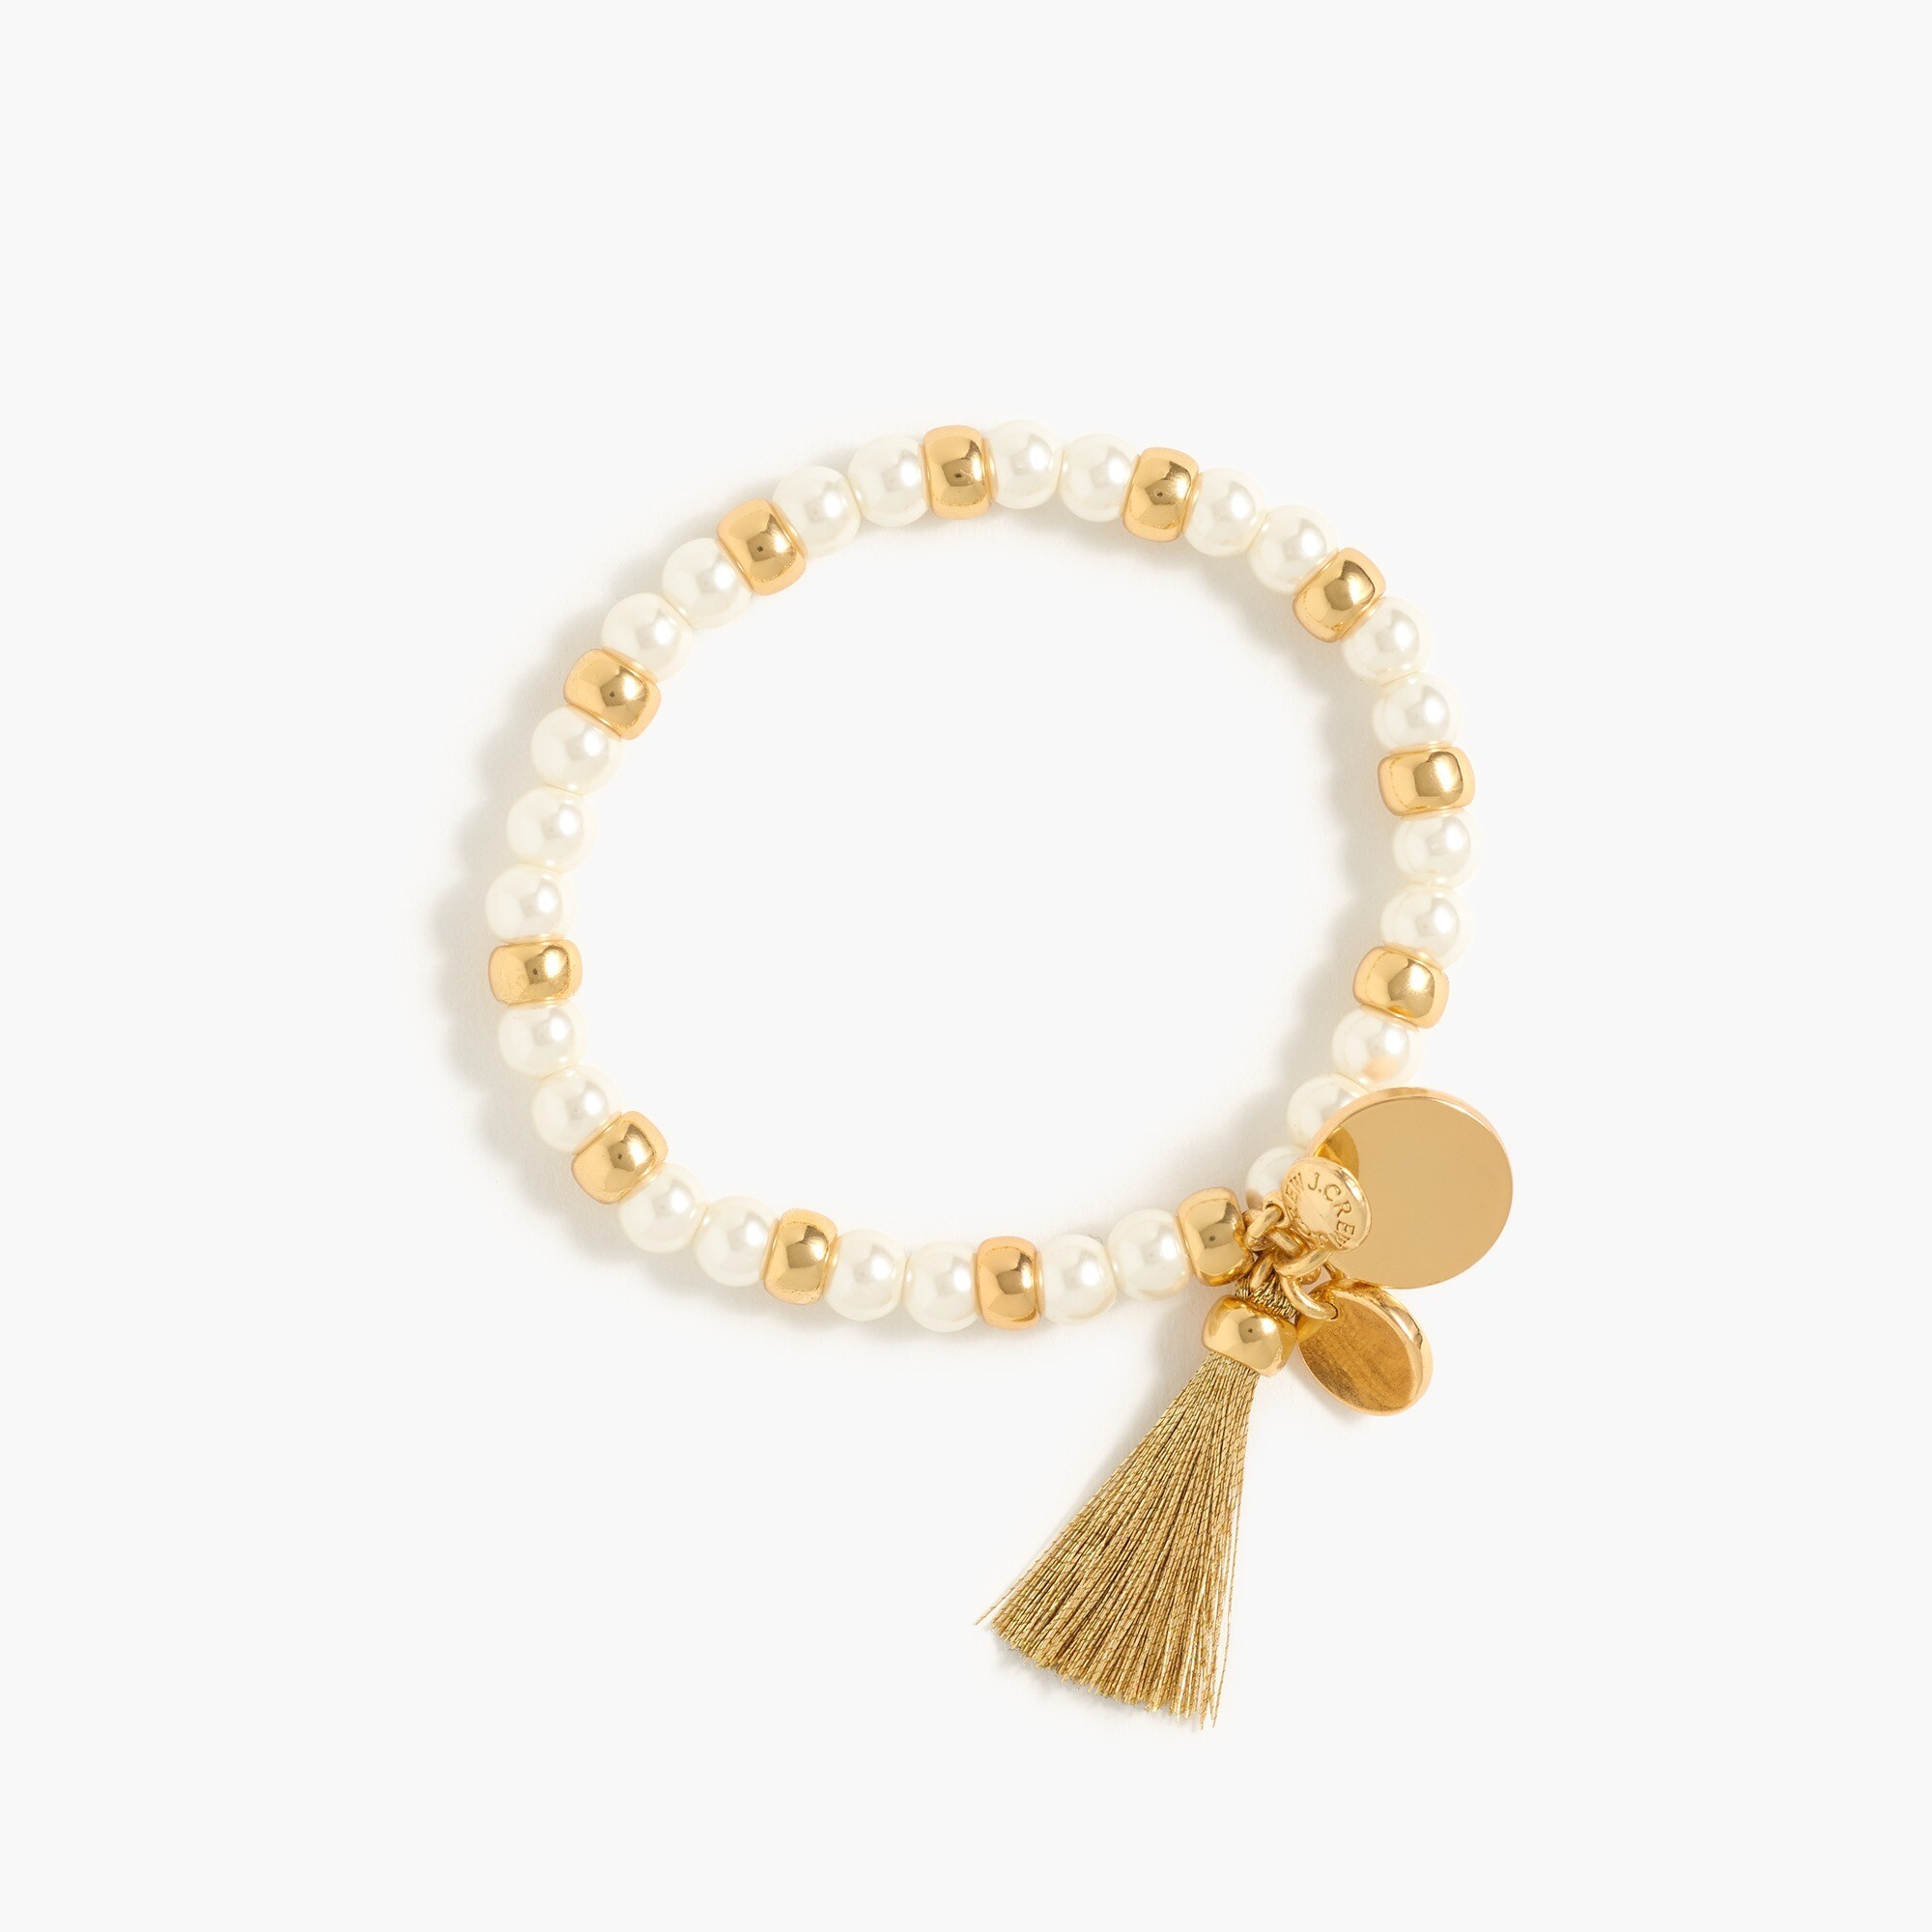 women's bead and tassel stretch bracelet - women's jewelry